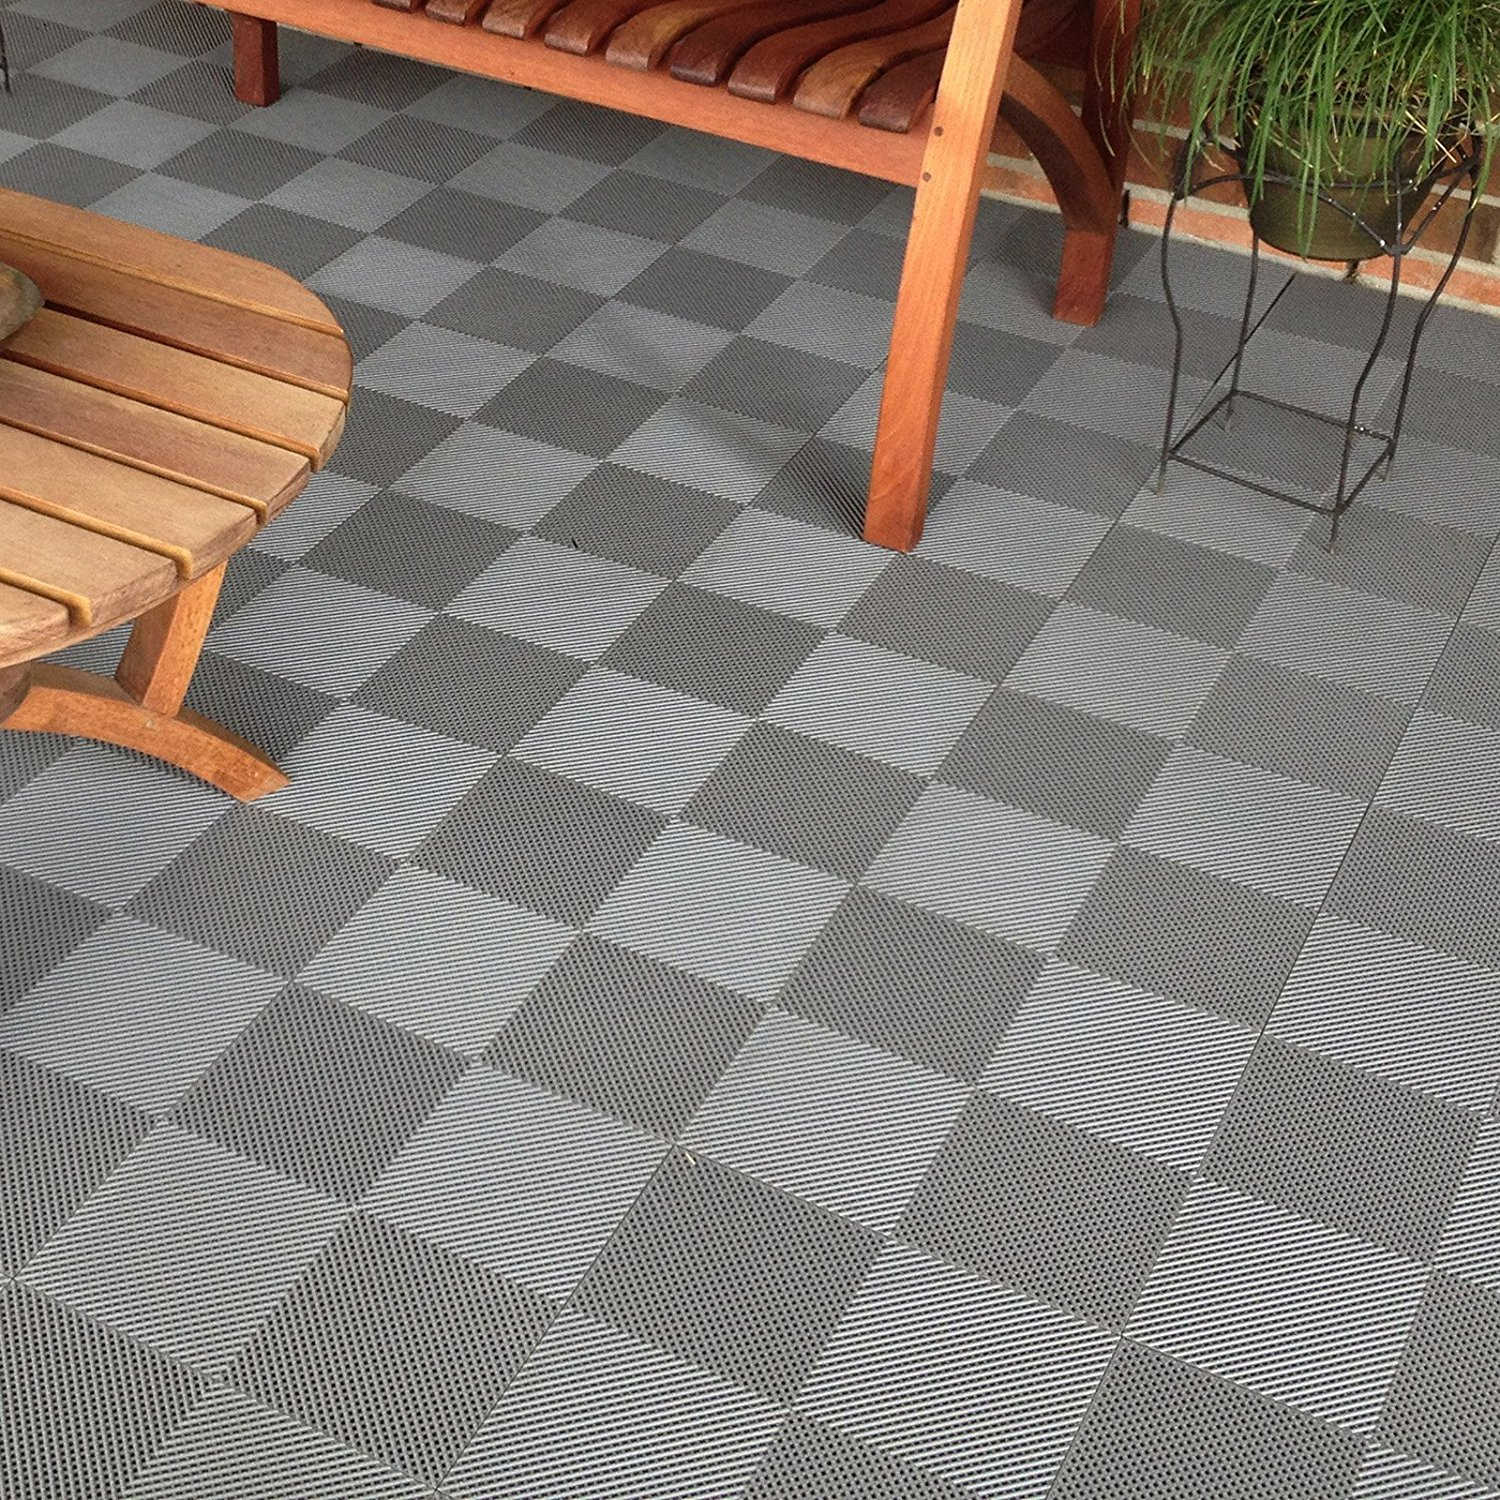 Garage Make Over Outdoor Tiles The Tile Home Guide